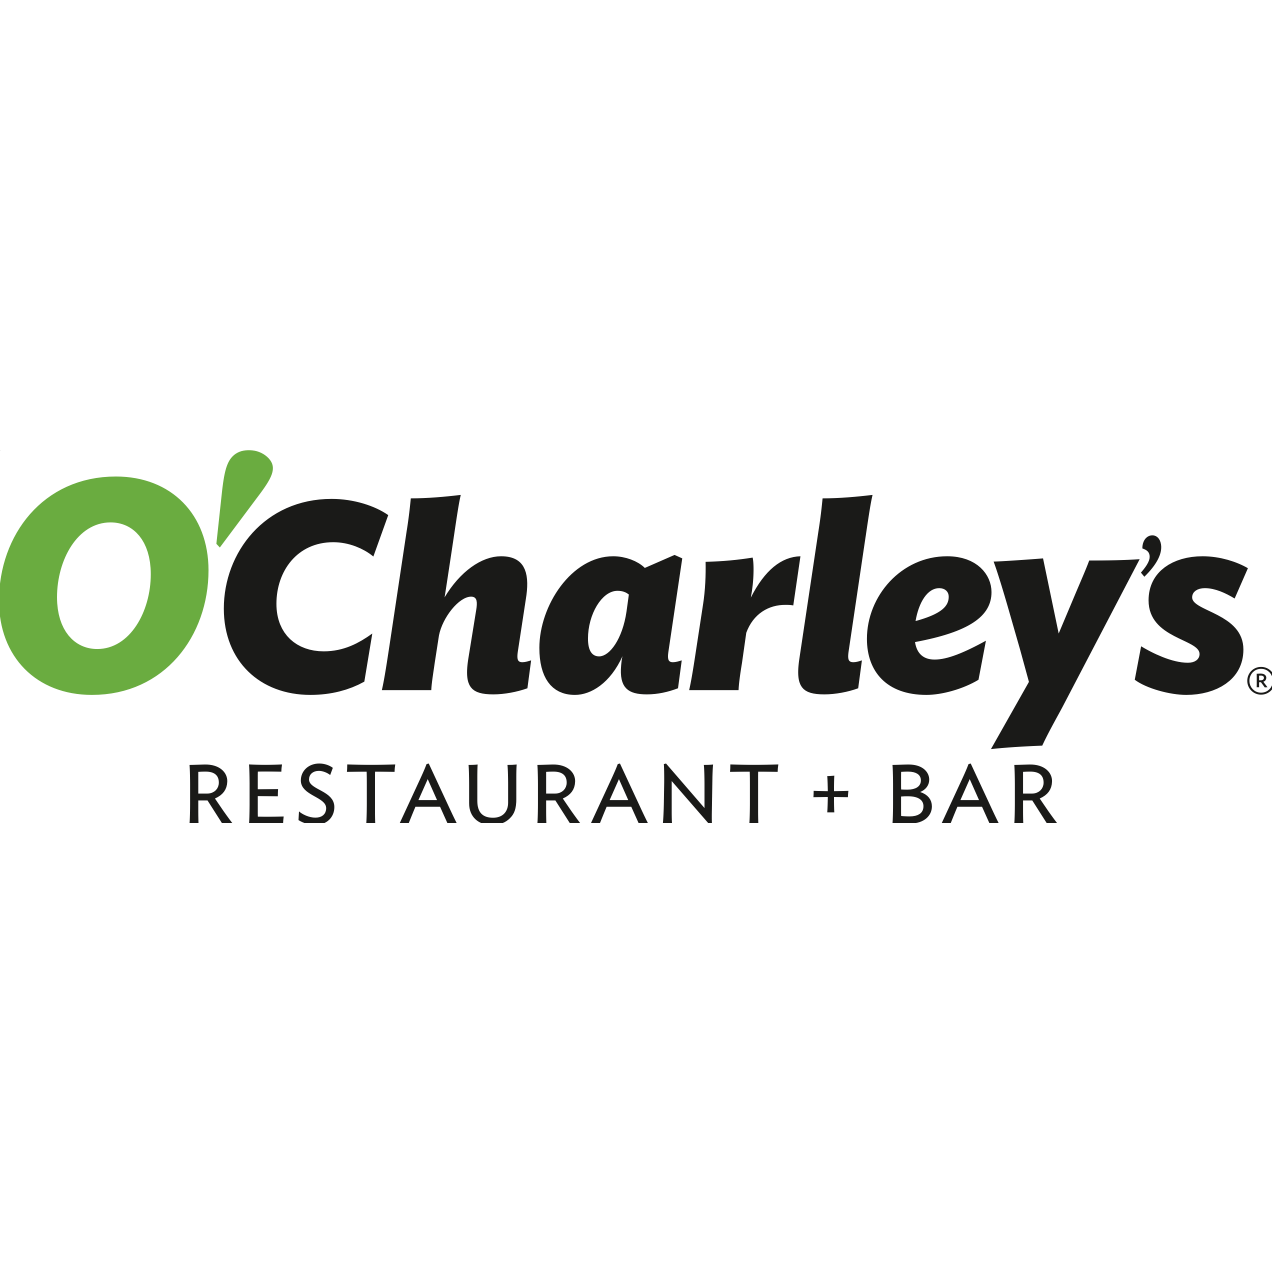 O'Charley's Restaurant & Bar - Daphne, AL - Restaurants